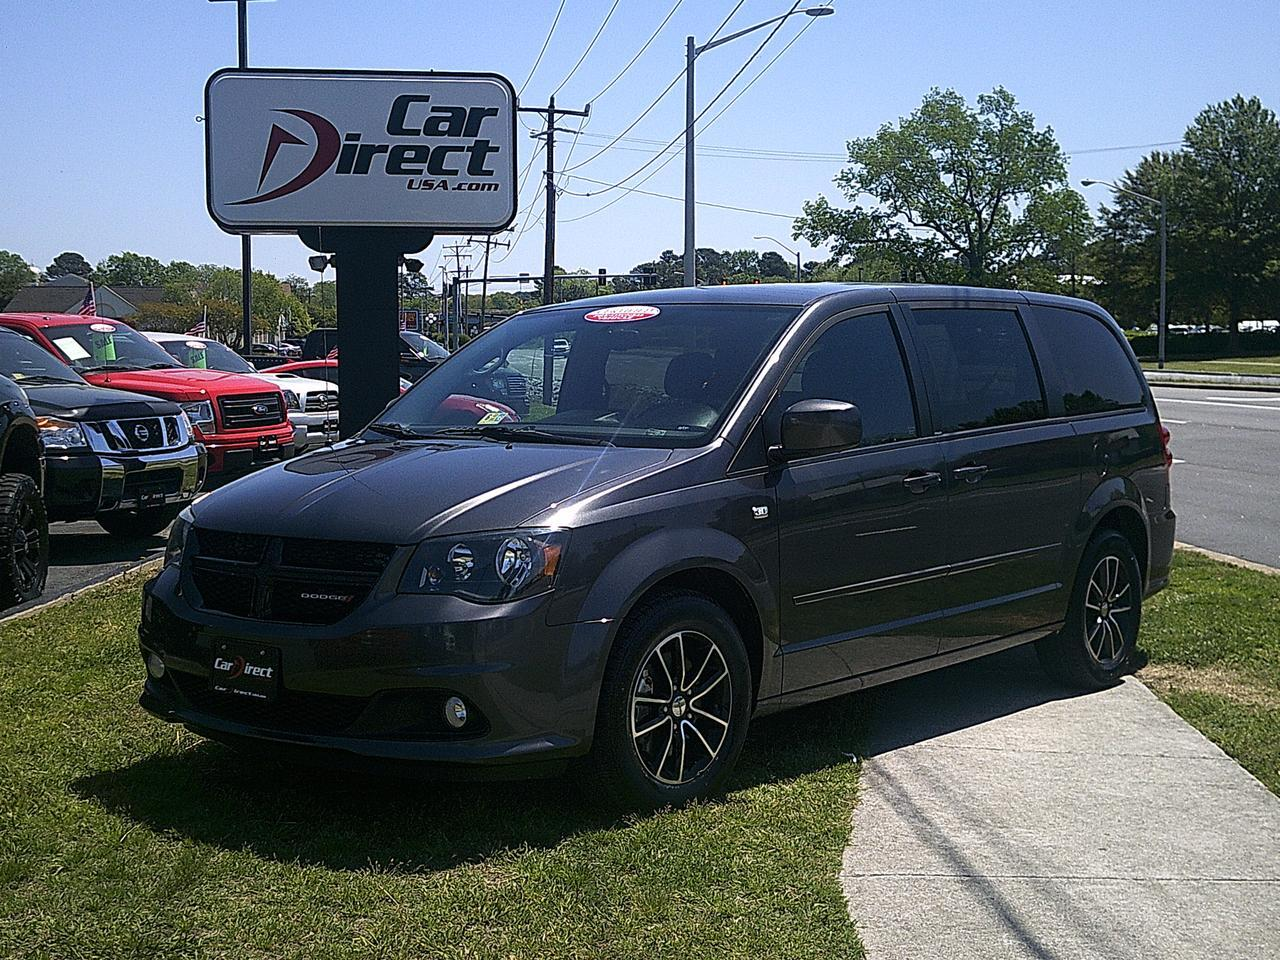 2014 dodge grand caravan sxt 30th anniversary autocheck certified navi dvd uconnect back up. Black Bedroom Furniture Sets. Home Design Ideas